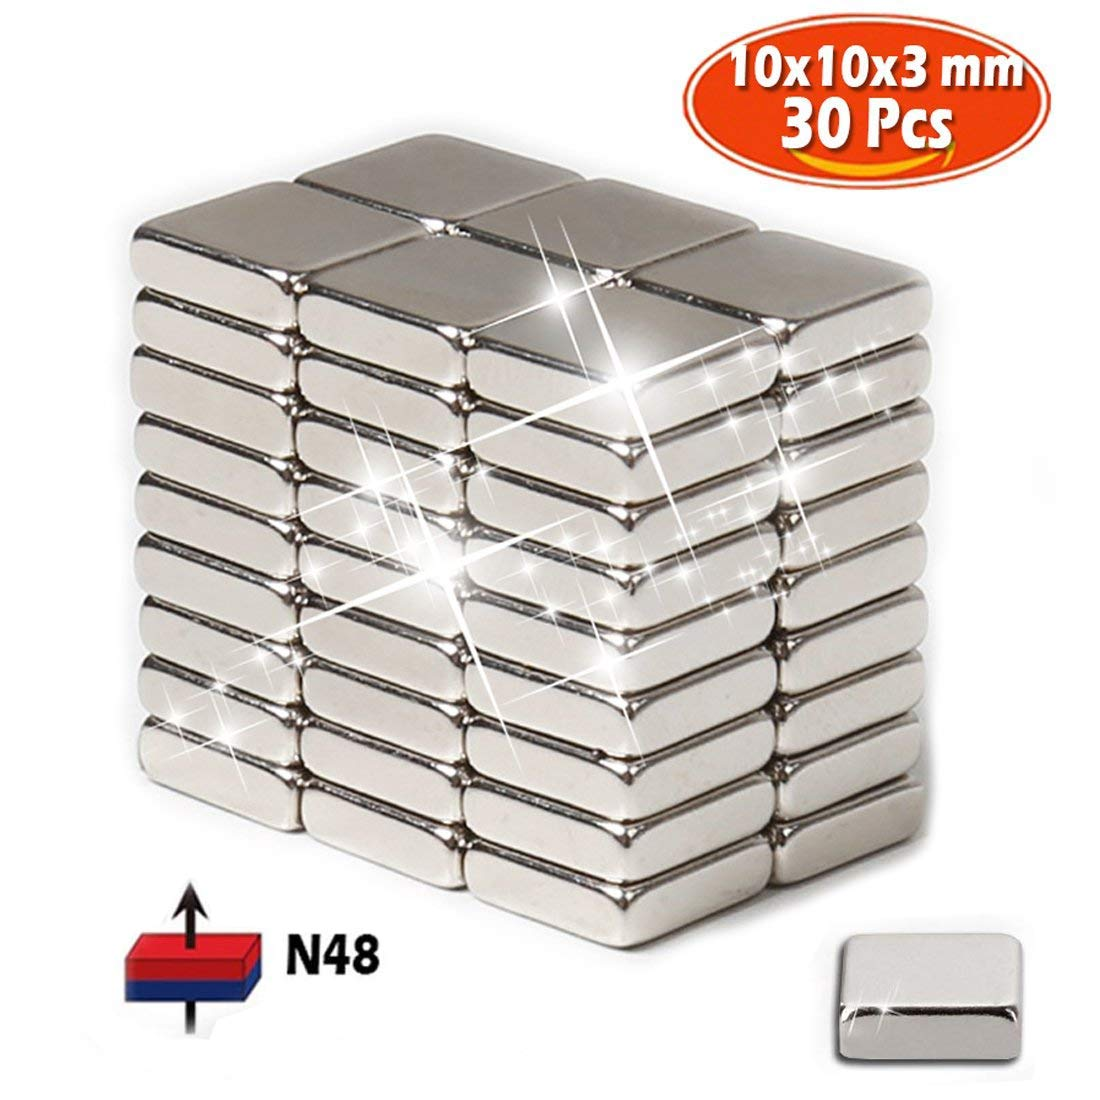 Neodymium magnets, 30 pack of Strong heavy duty refrigerator Rare earth magnets, Grade N48 Magnetic Circular Square 10x10x3 mm, Perfect for Fridge, Pin Board, White board, Force: 2.5kg HPLQM